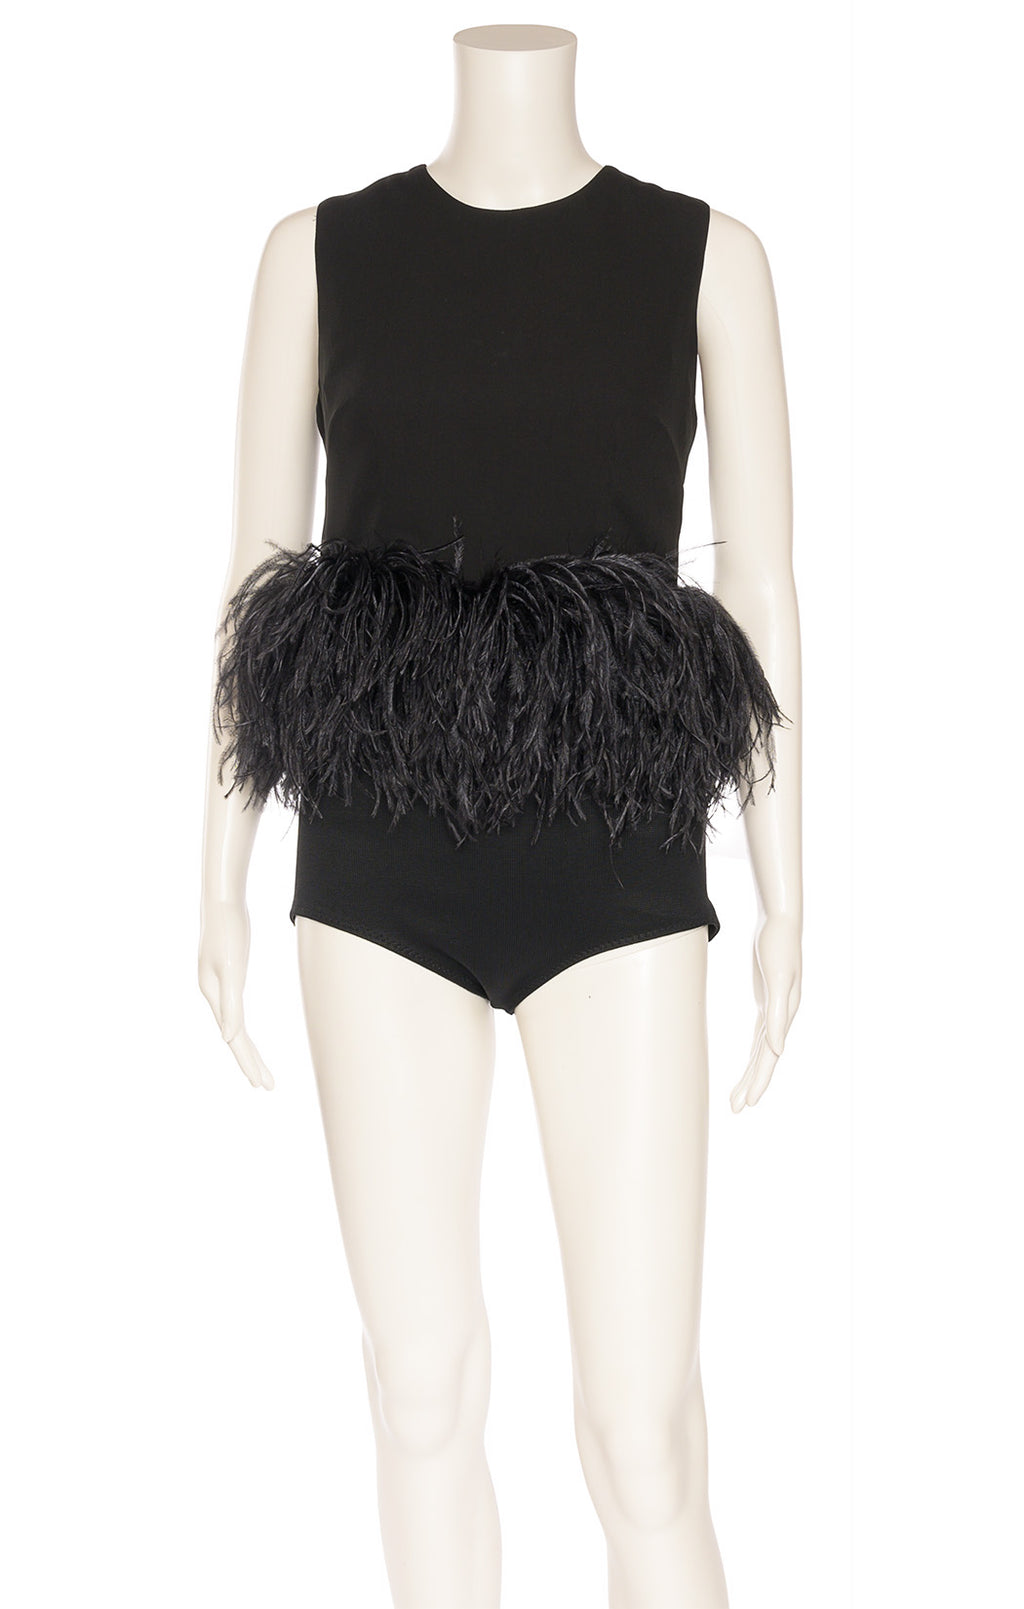 Black sleeveless top with back invisible zipper and ostrich feathered bottom